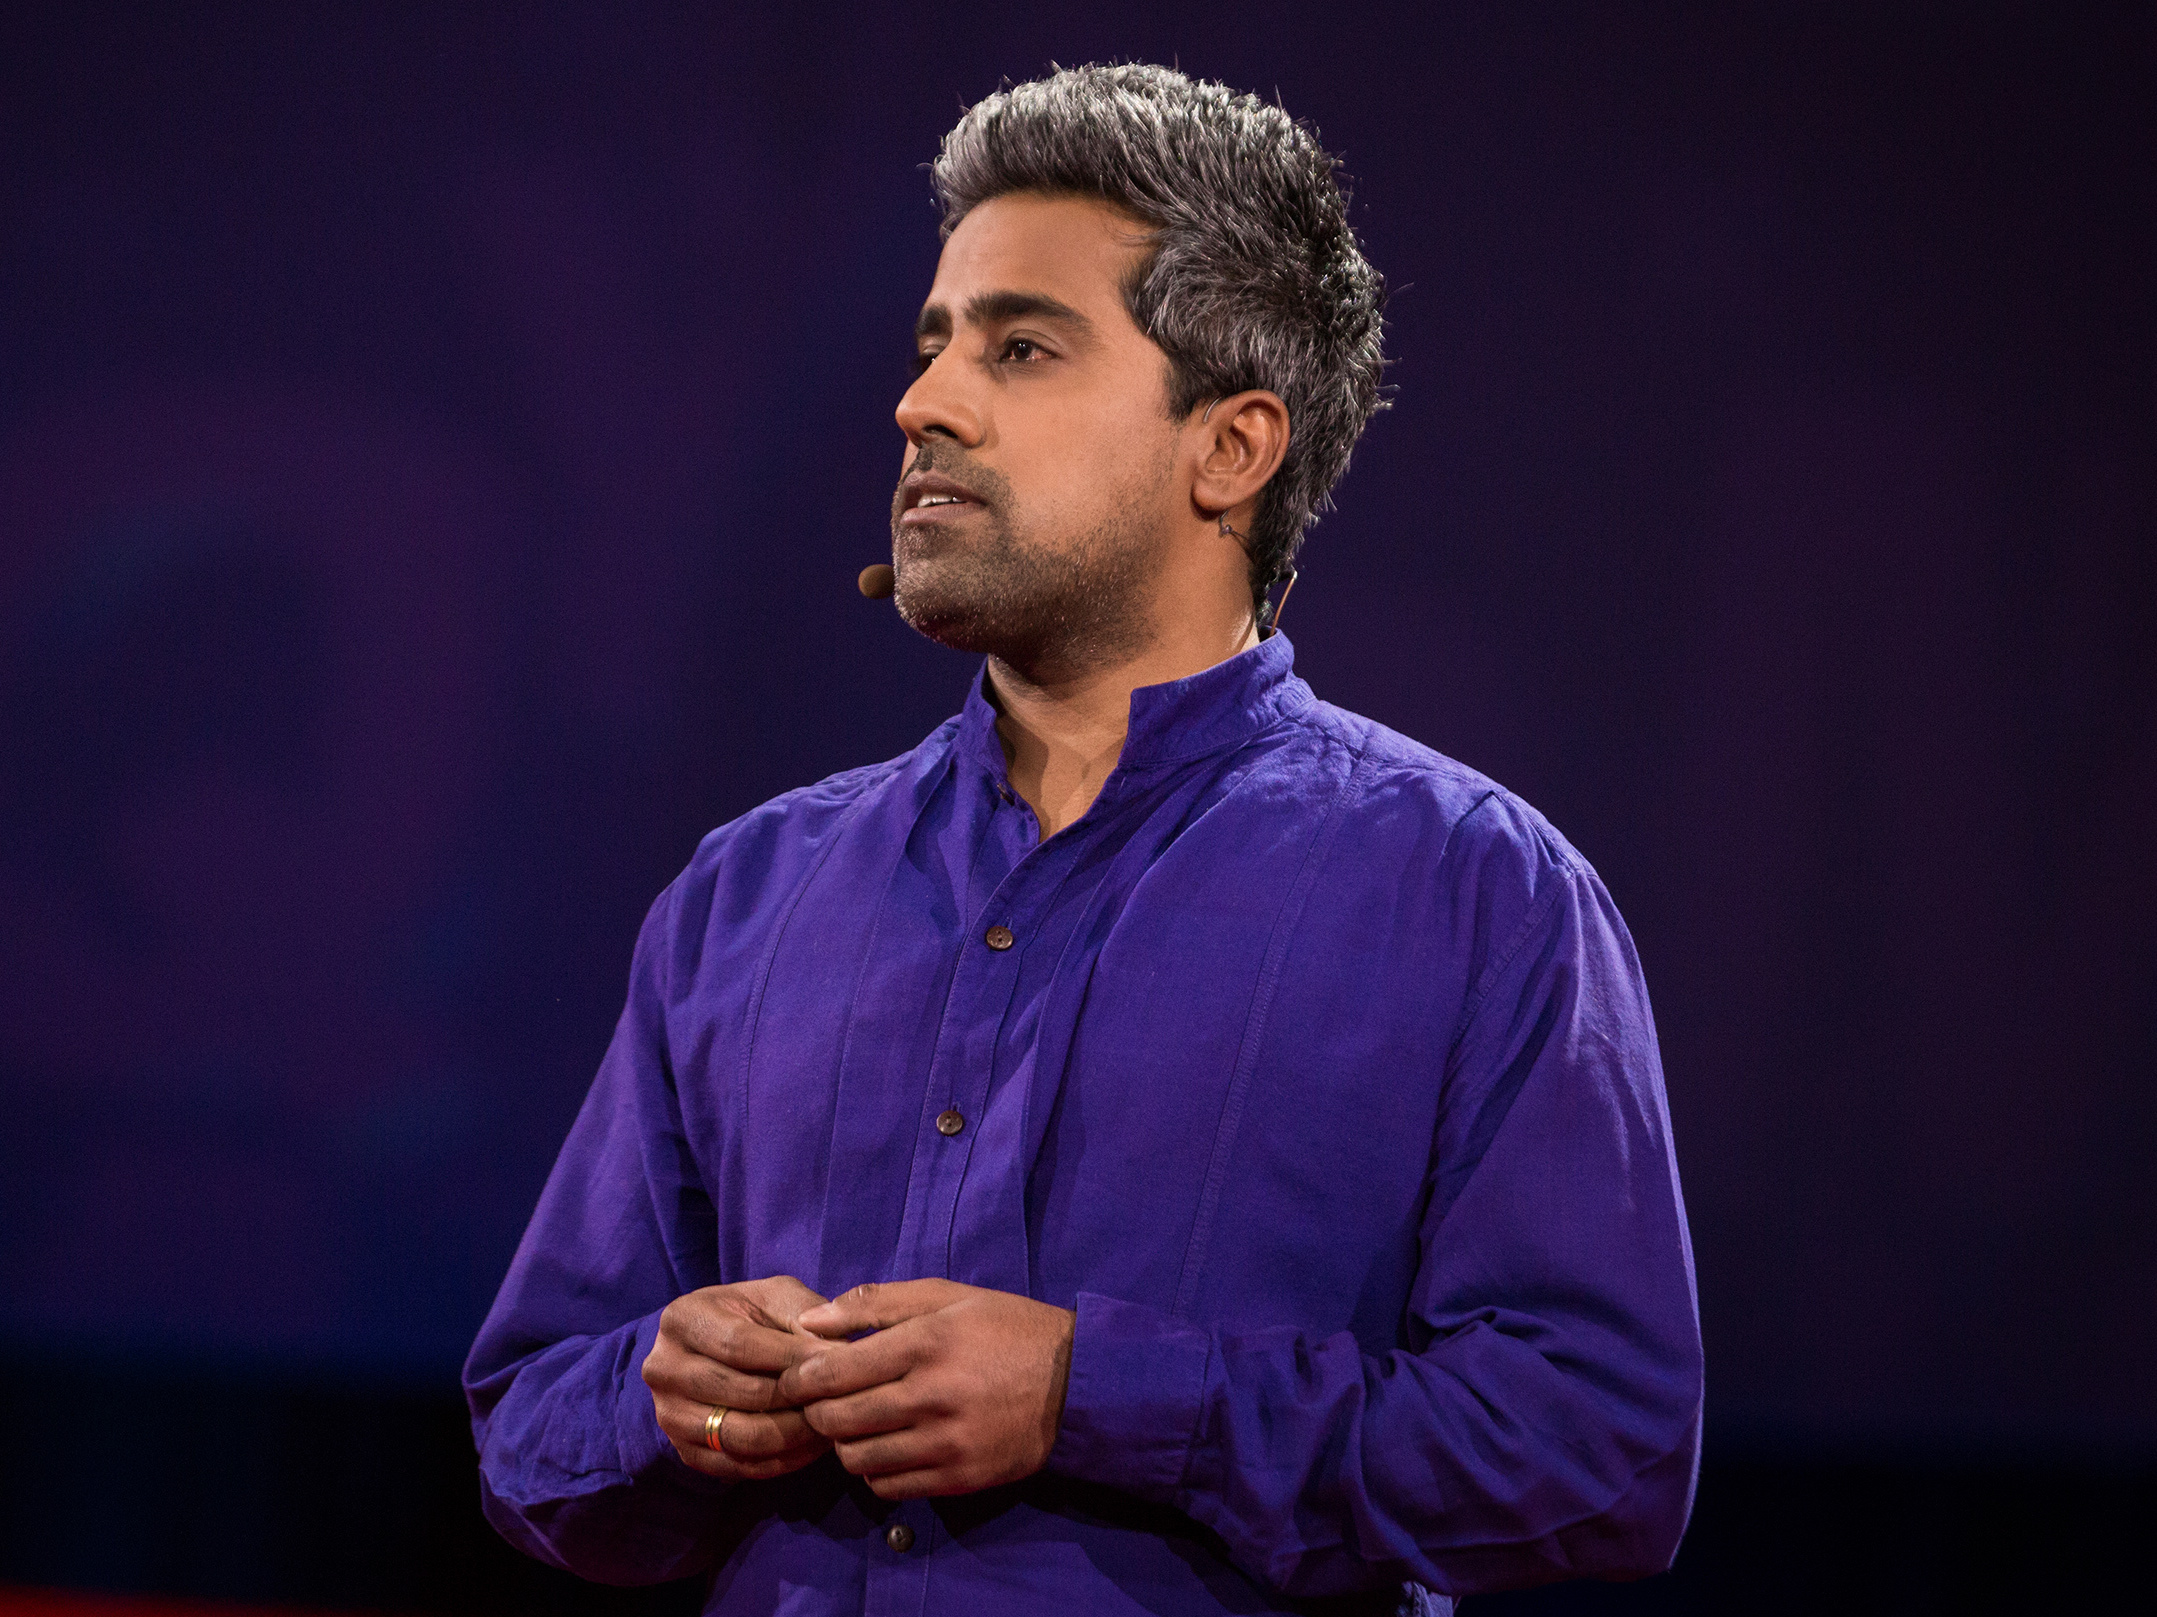 Anand Giridharadas performing his 2015 TED talk (photograph by James Duncan Davidson/TED)